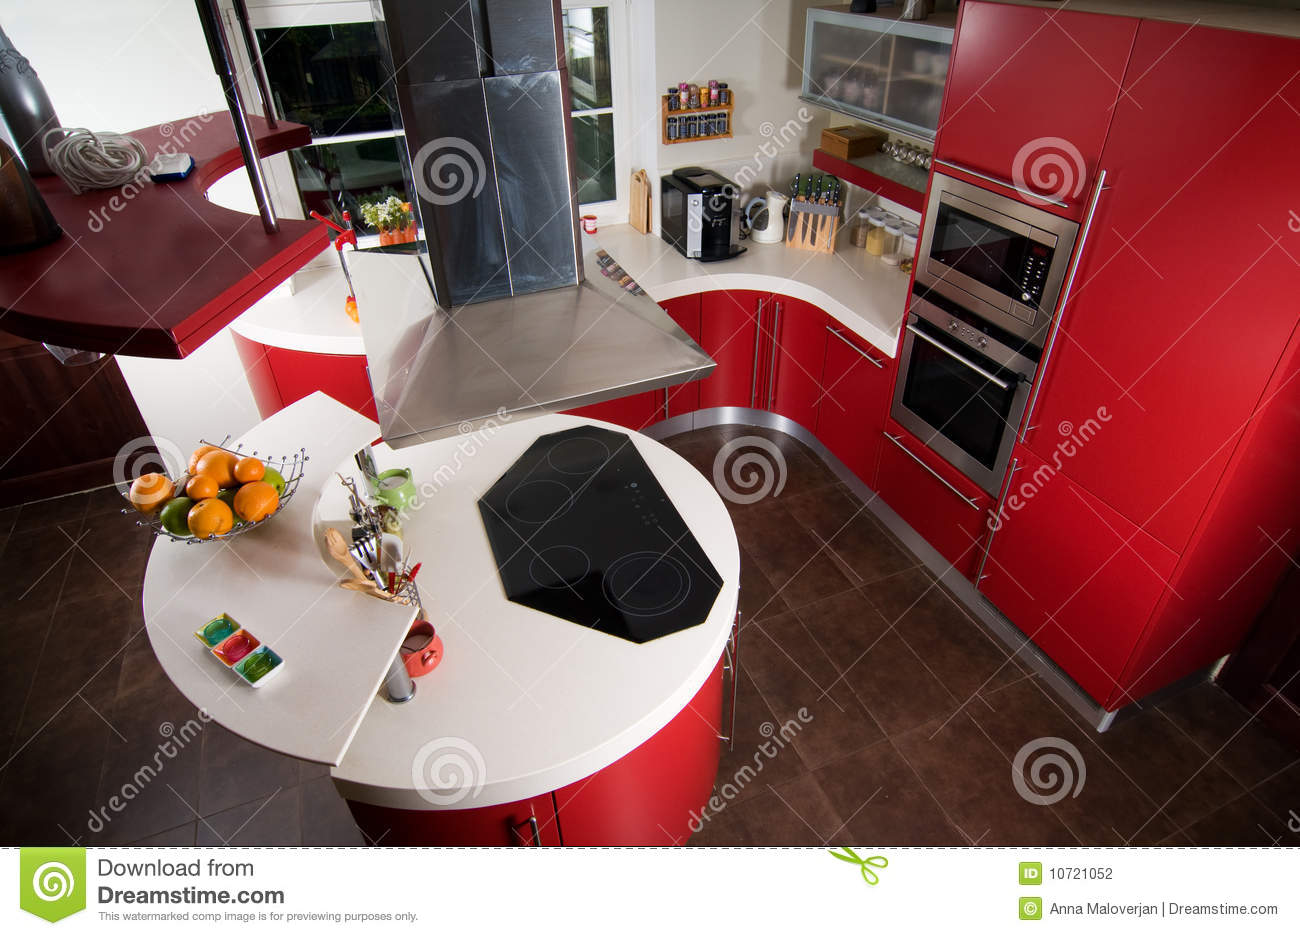 Cuisine moderne rouge photographie stock   image: 10721052